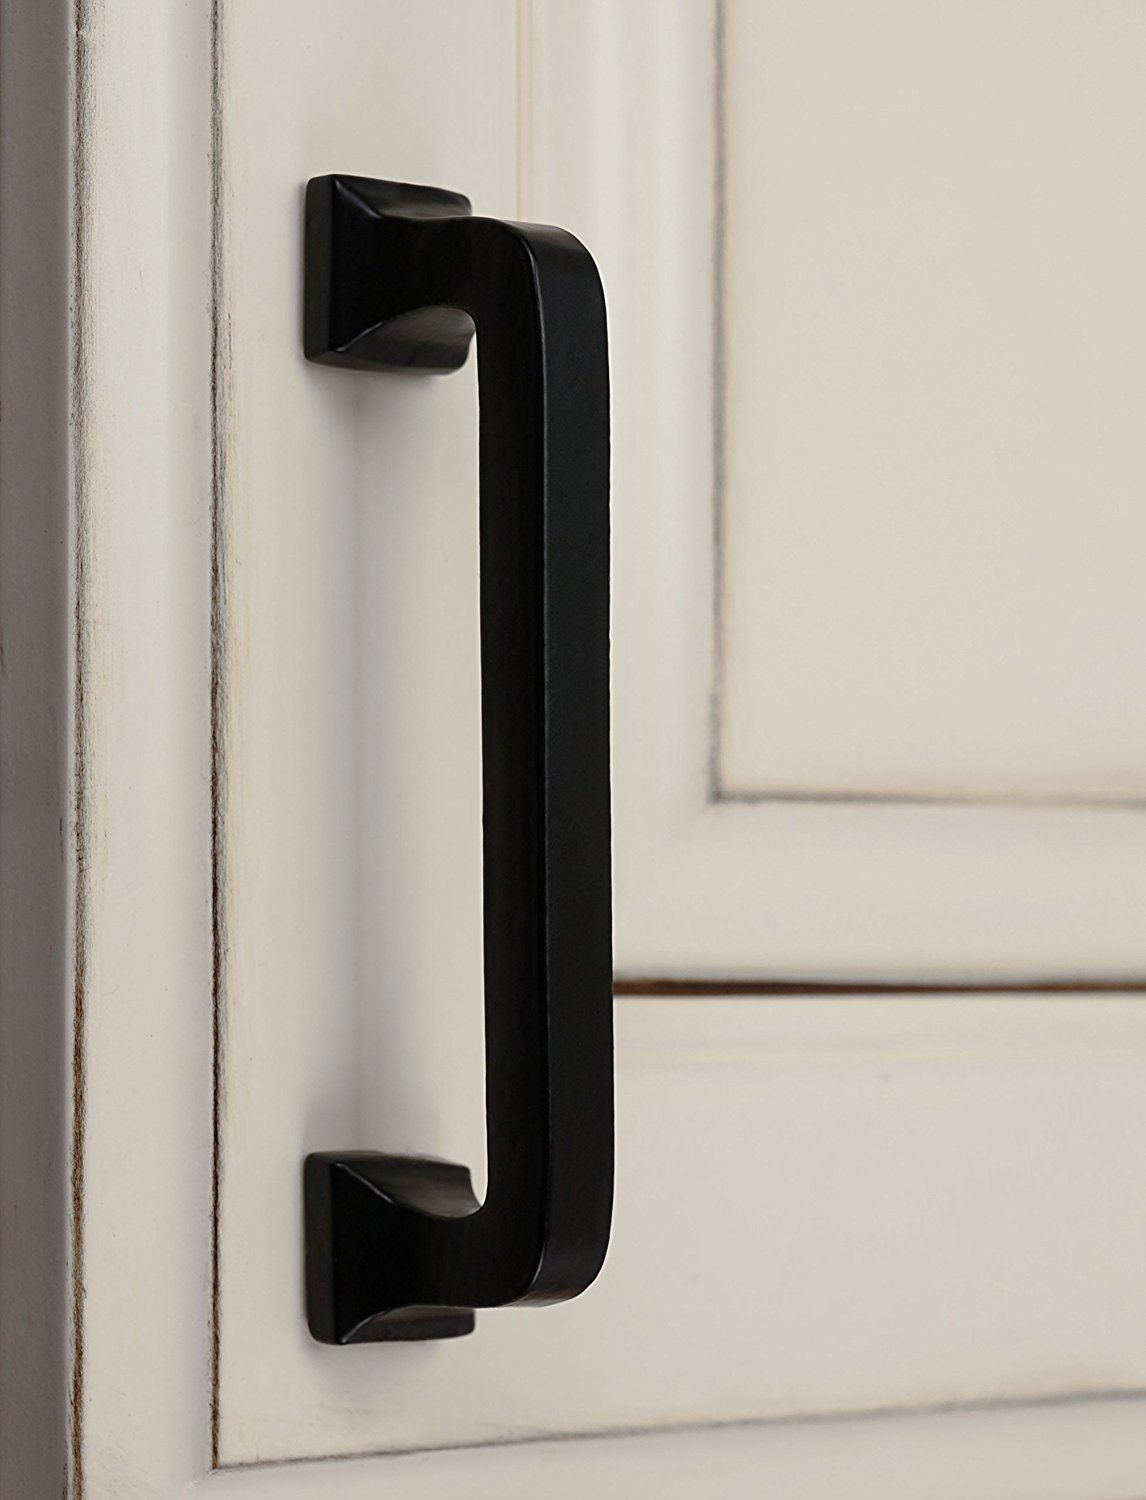 Iron Valley 4 C2c Square Contemporary Cabinet Handle Pull Solid Cast Iron 10 Pack Amazon Cabinet Handles Contemporary Cabinets Iron Cabinet Hardware